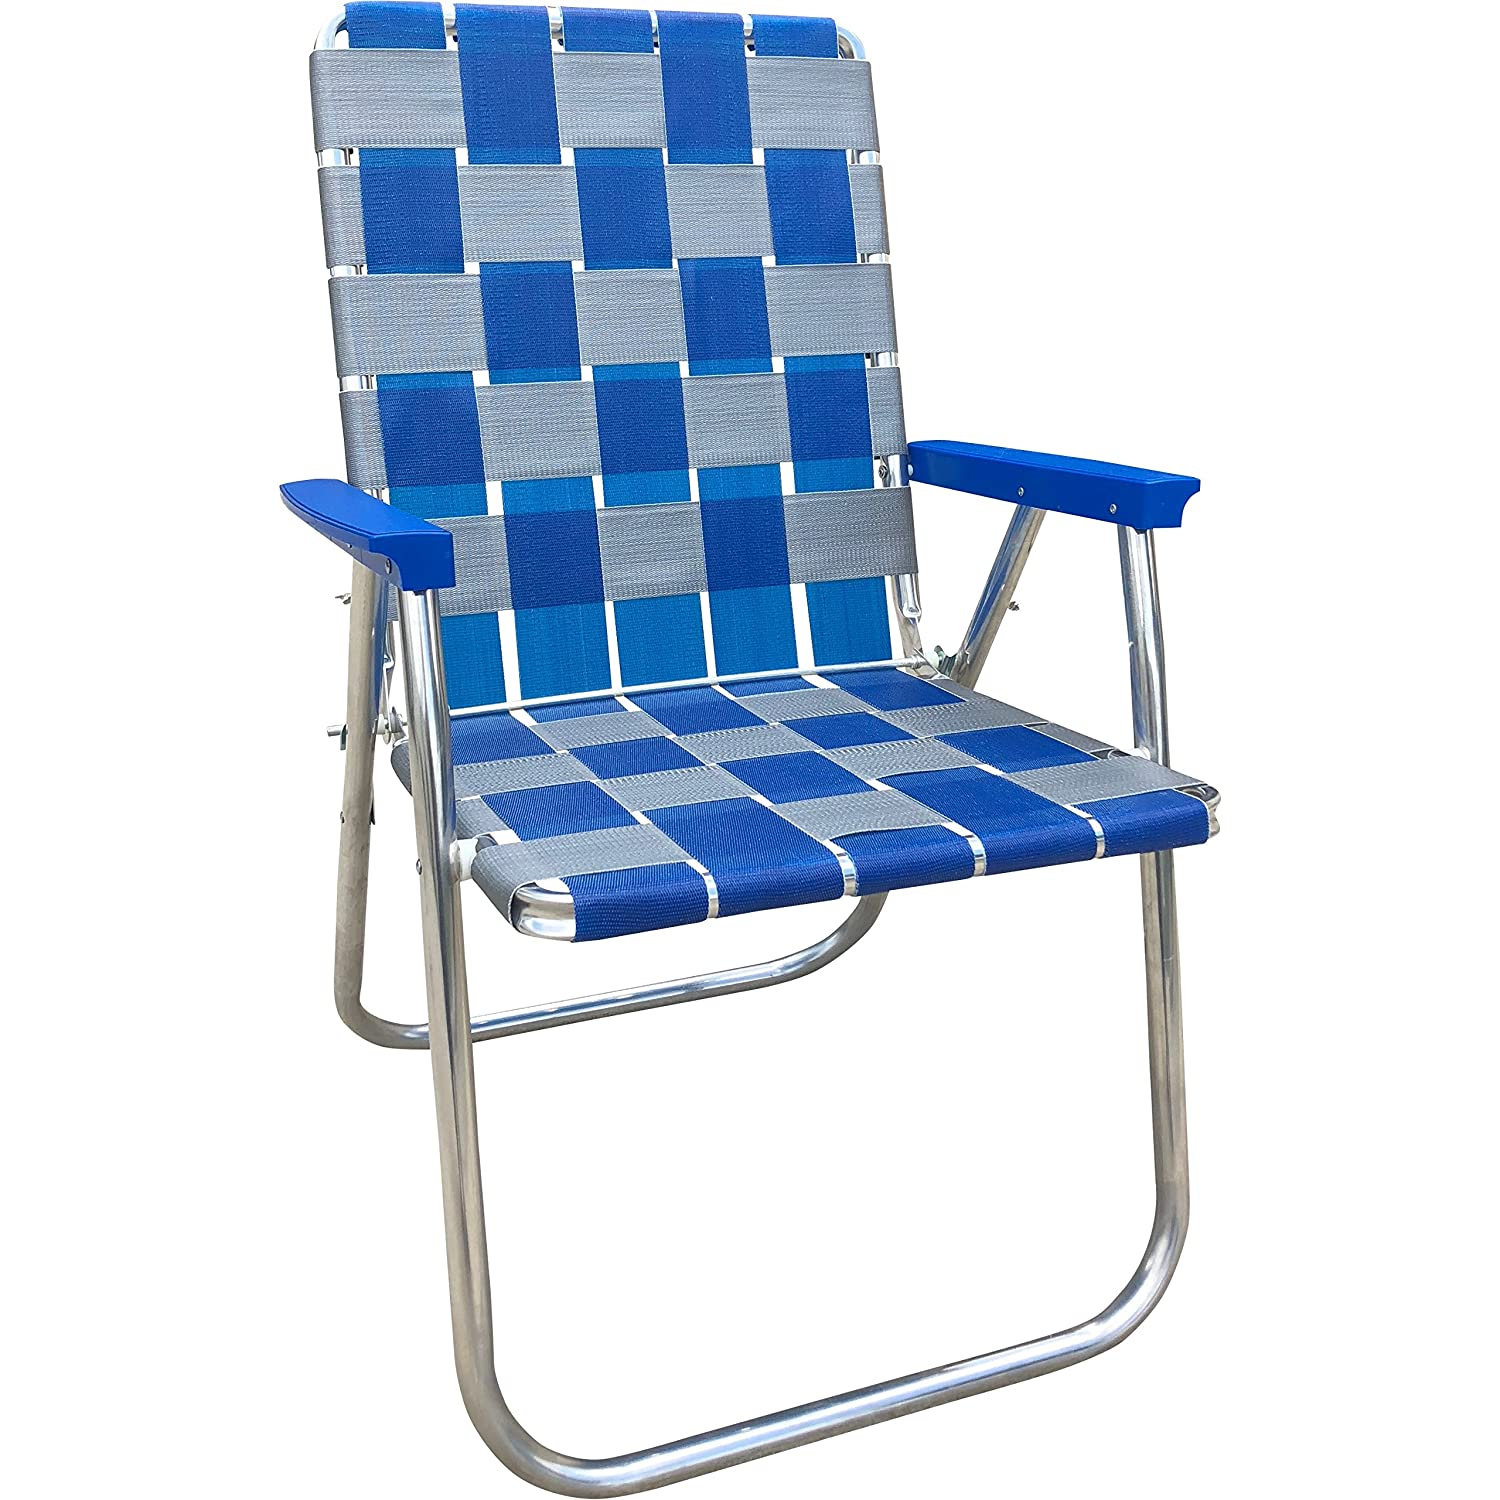 Lawn Chair USA Folding Aluminum Webbing Chair Tailgating, Blue Silver